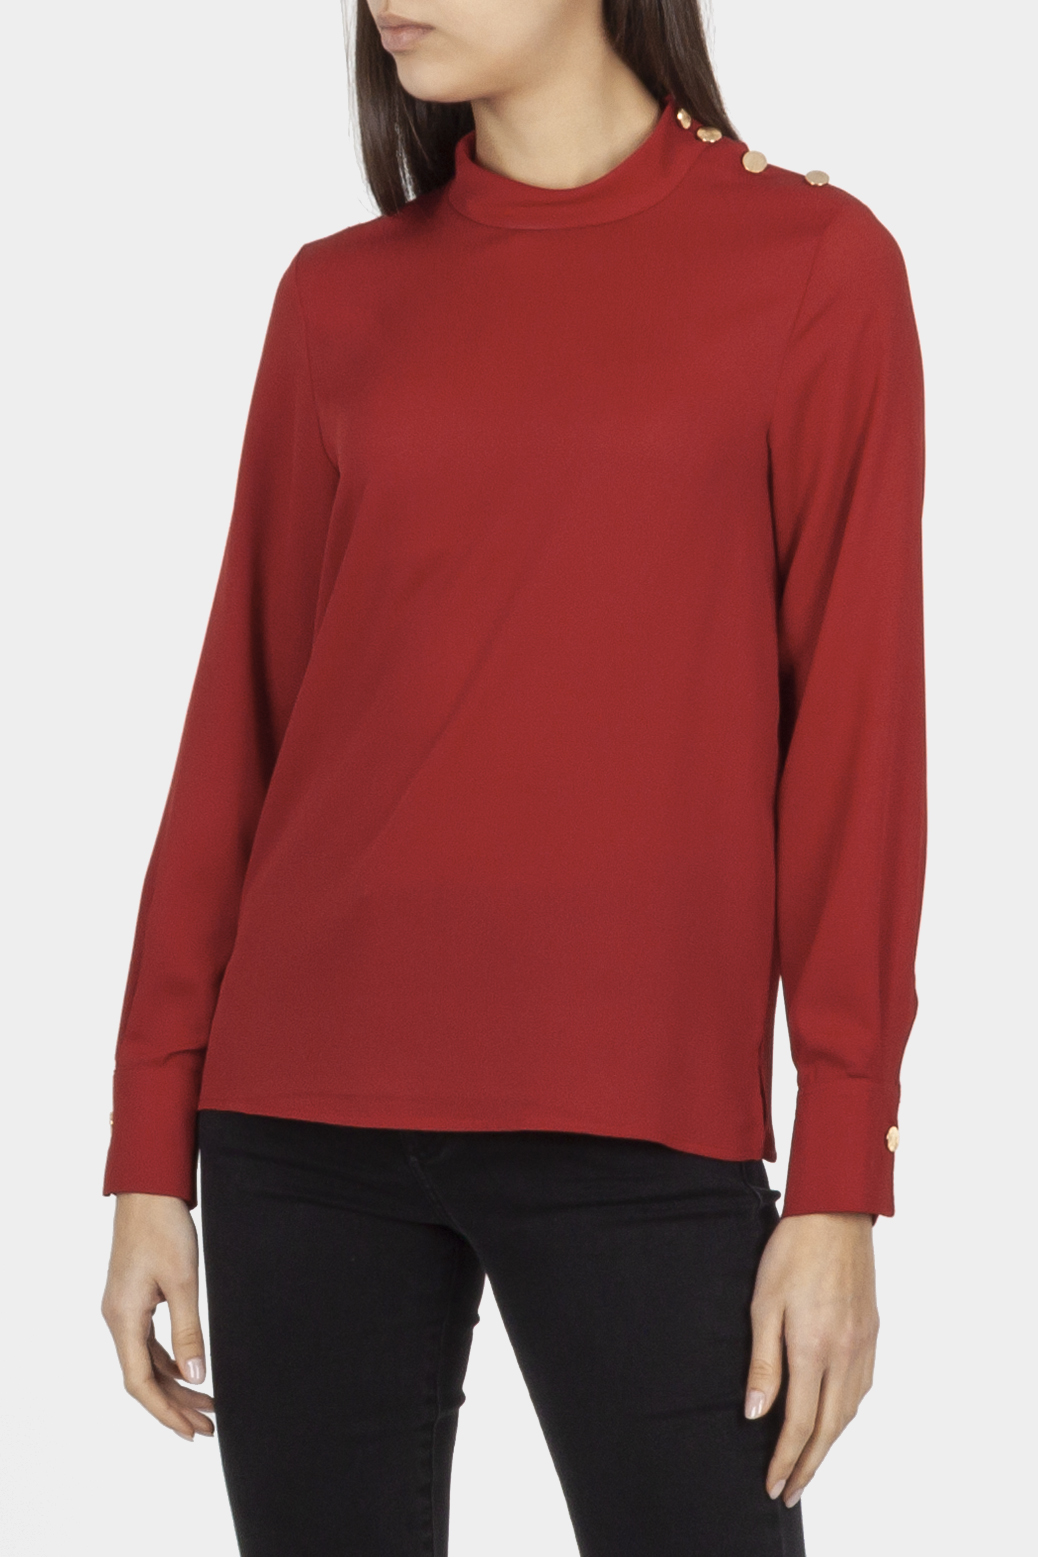 Blouse with a stand-up collar